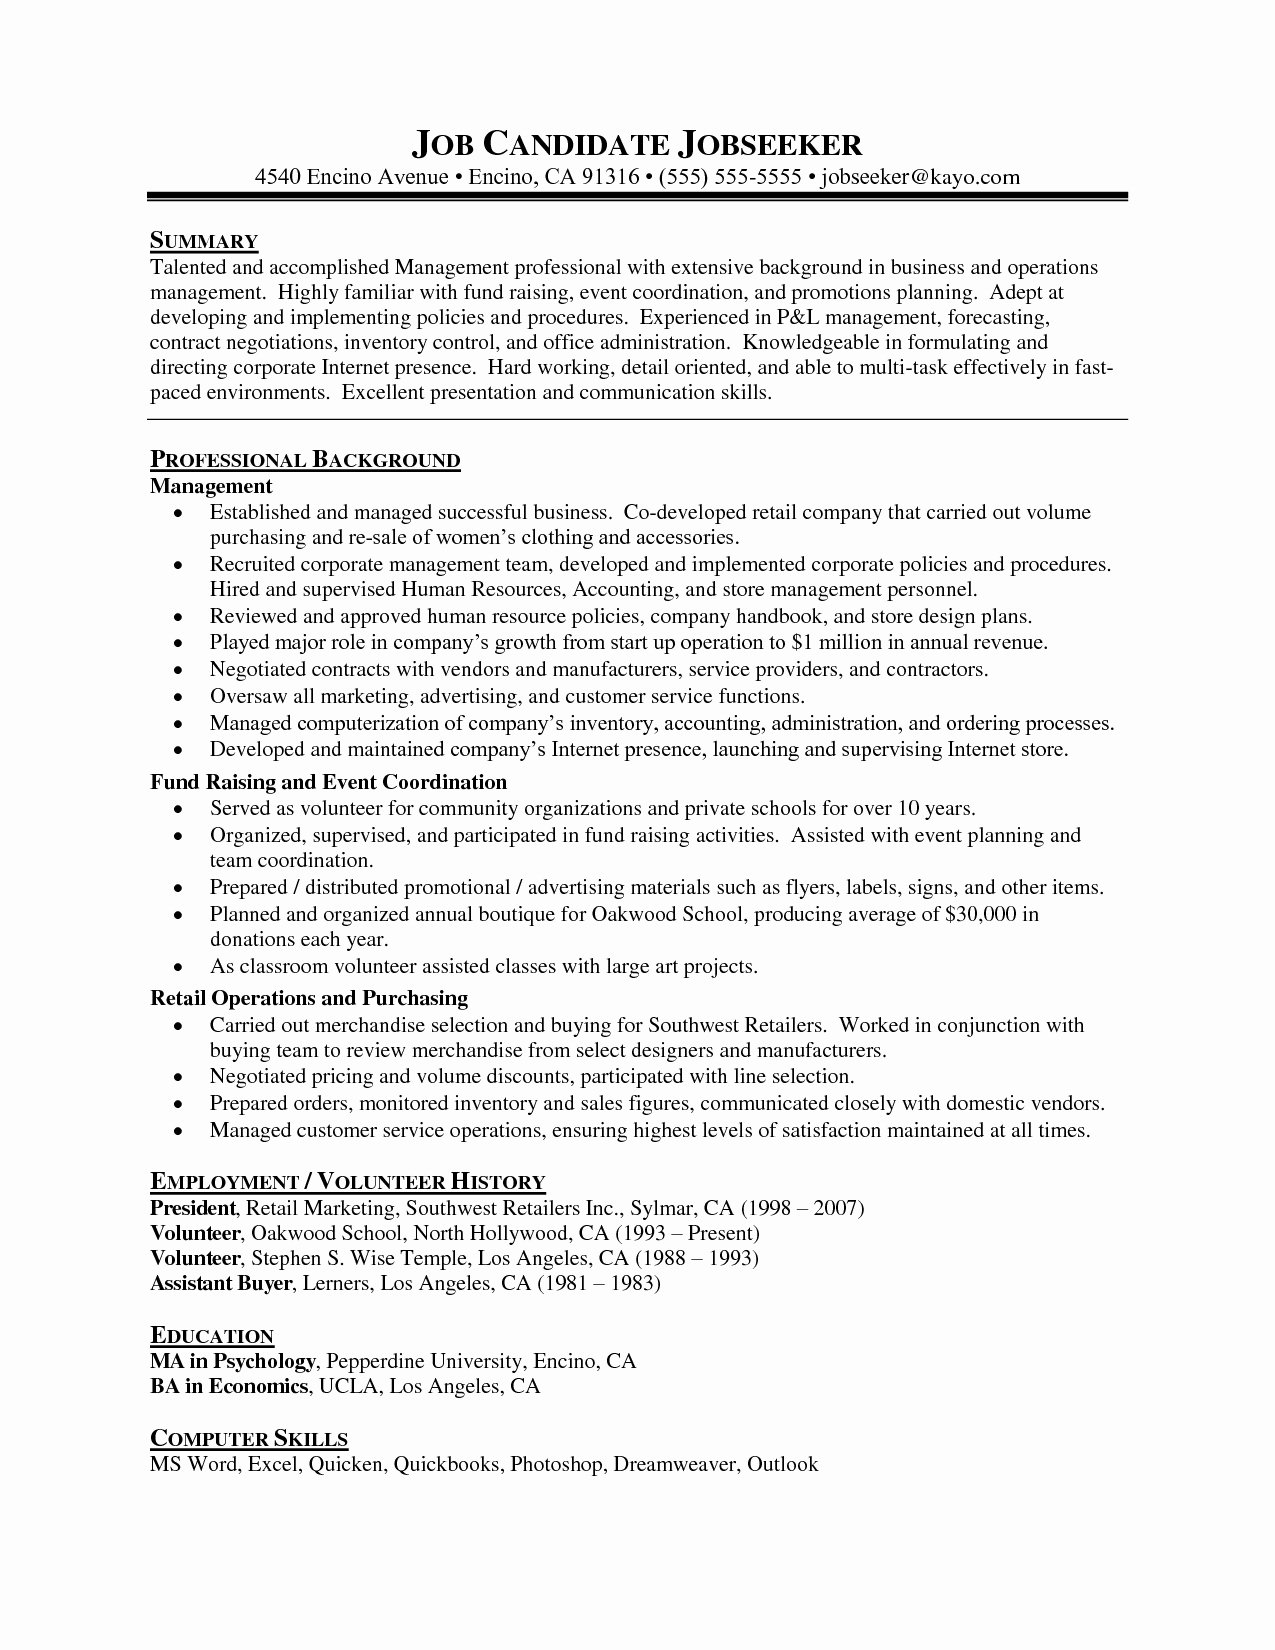 Resume for Promotion within Same Company Inspirational Sample Resume Promotion within Pany